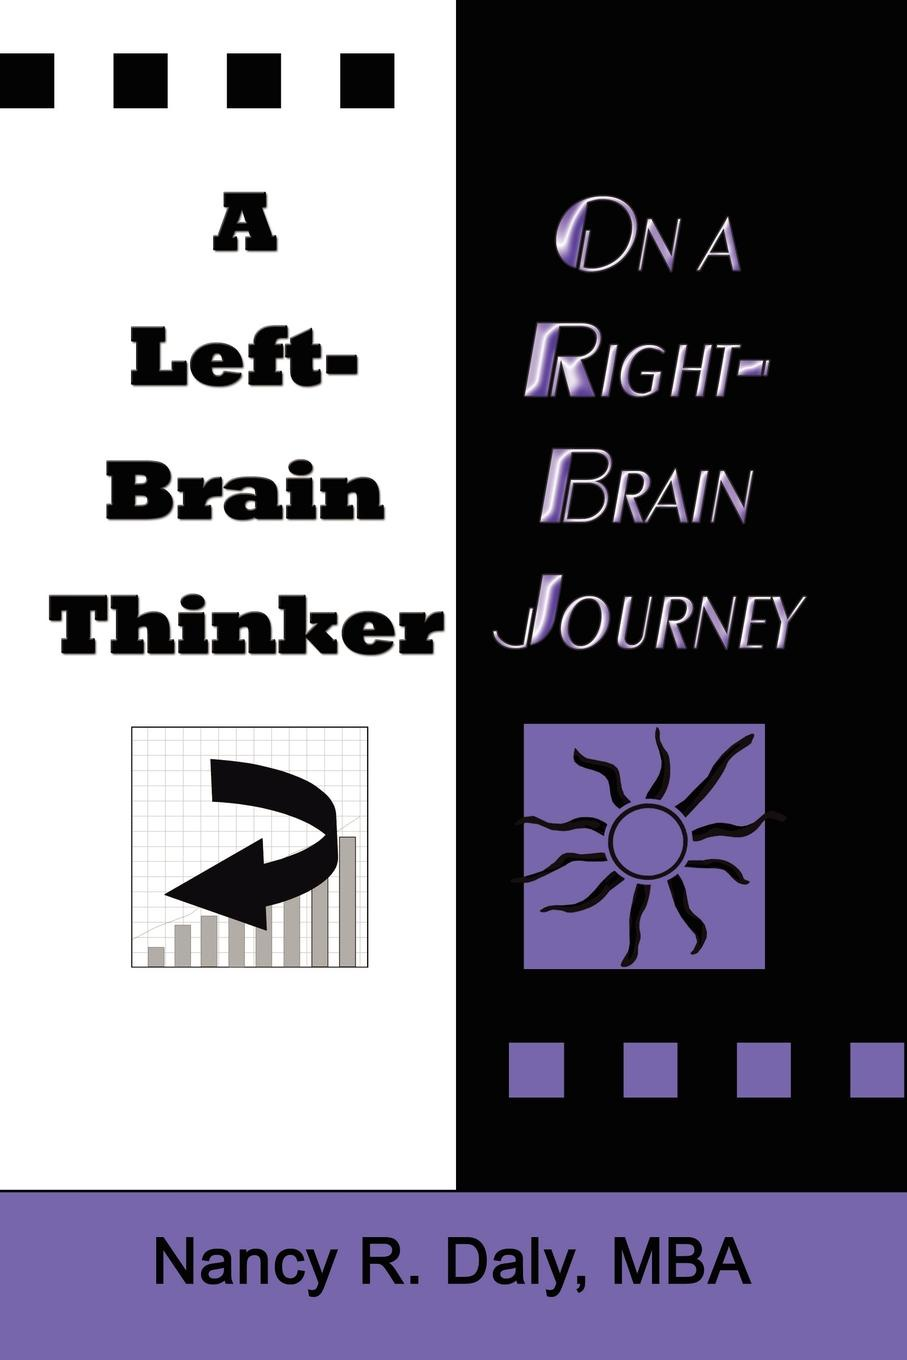 Nancy R. Daly MBA A LEFT-BRAIN THINKER ON A RIGHT-BRAIN JOURNEY. New Formulas for Attaining Life-Changing Goals недорго, оригинальная цена